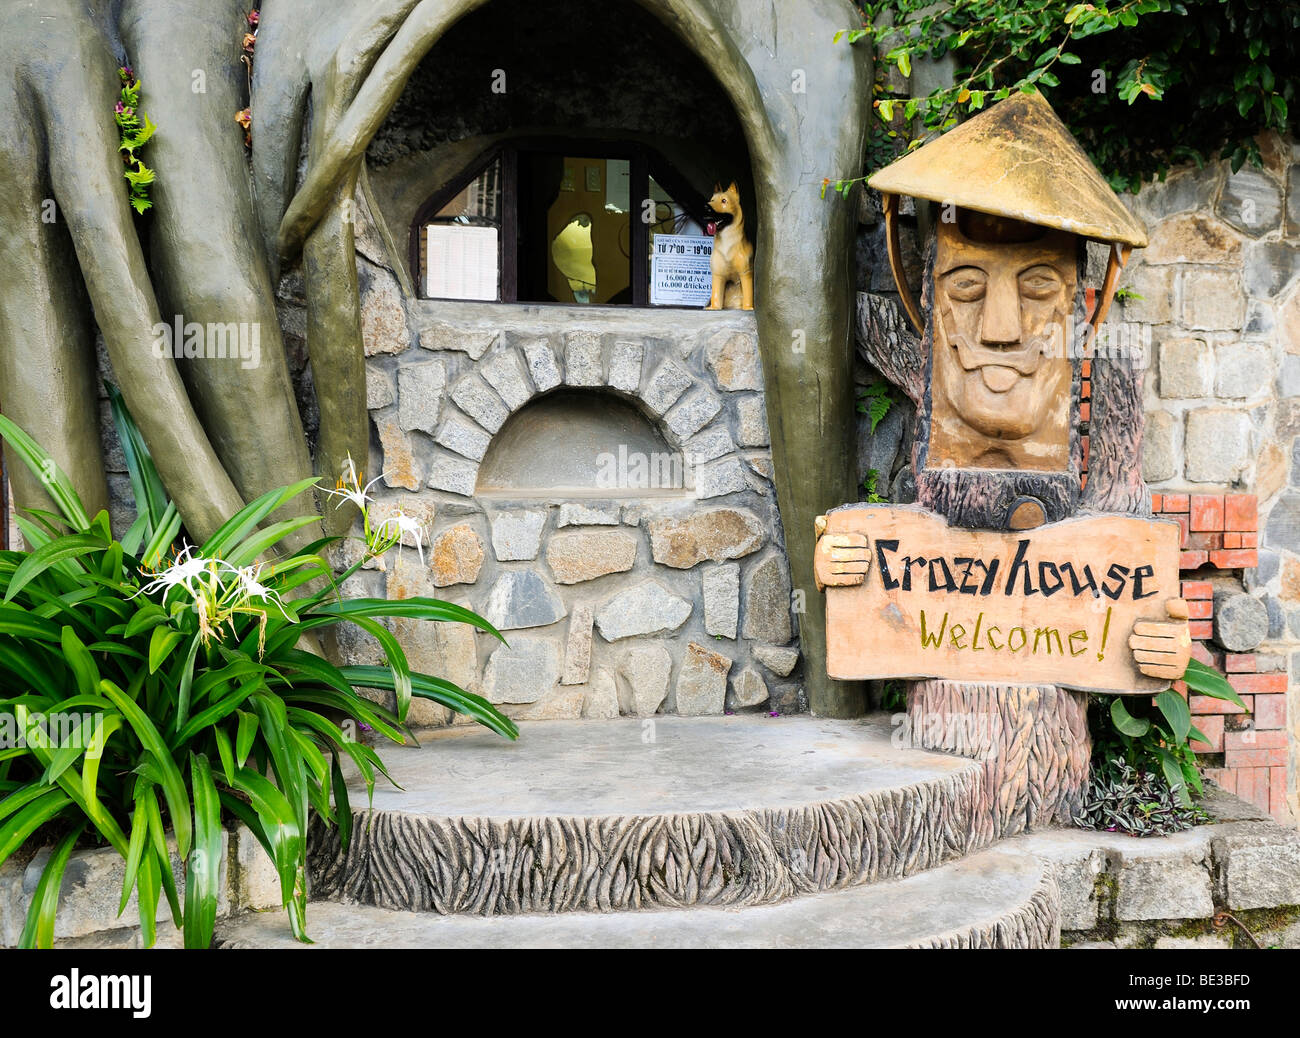 Laughing mushroom head figure with sign and pay desk at the Crazy House  Hotel, Hang 27975e72ef